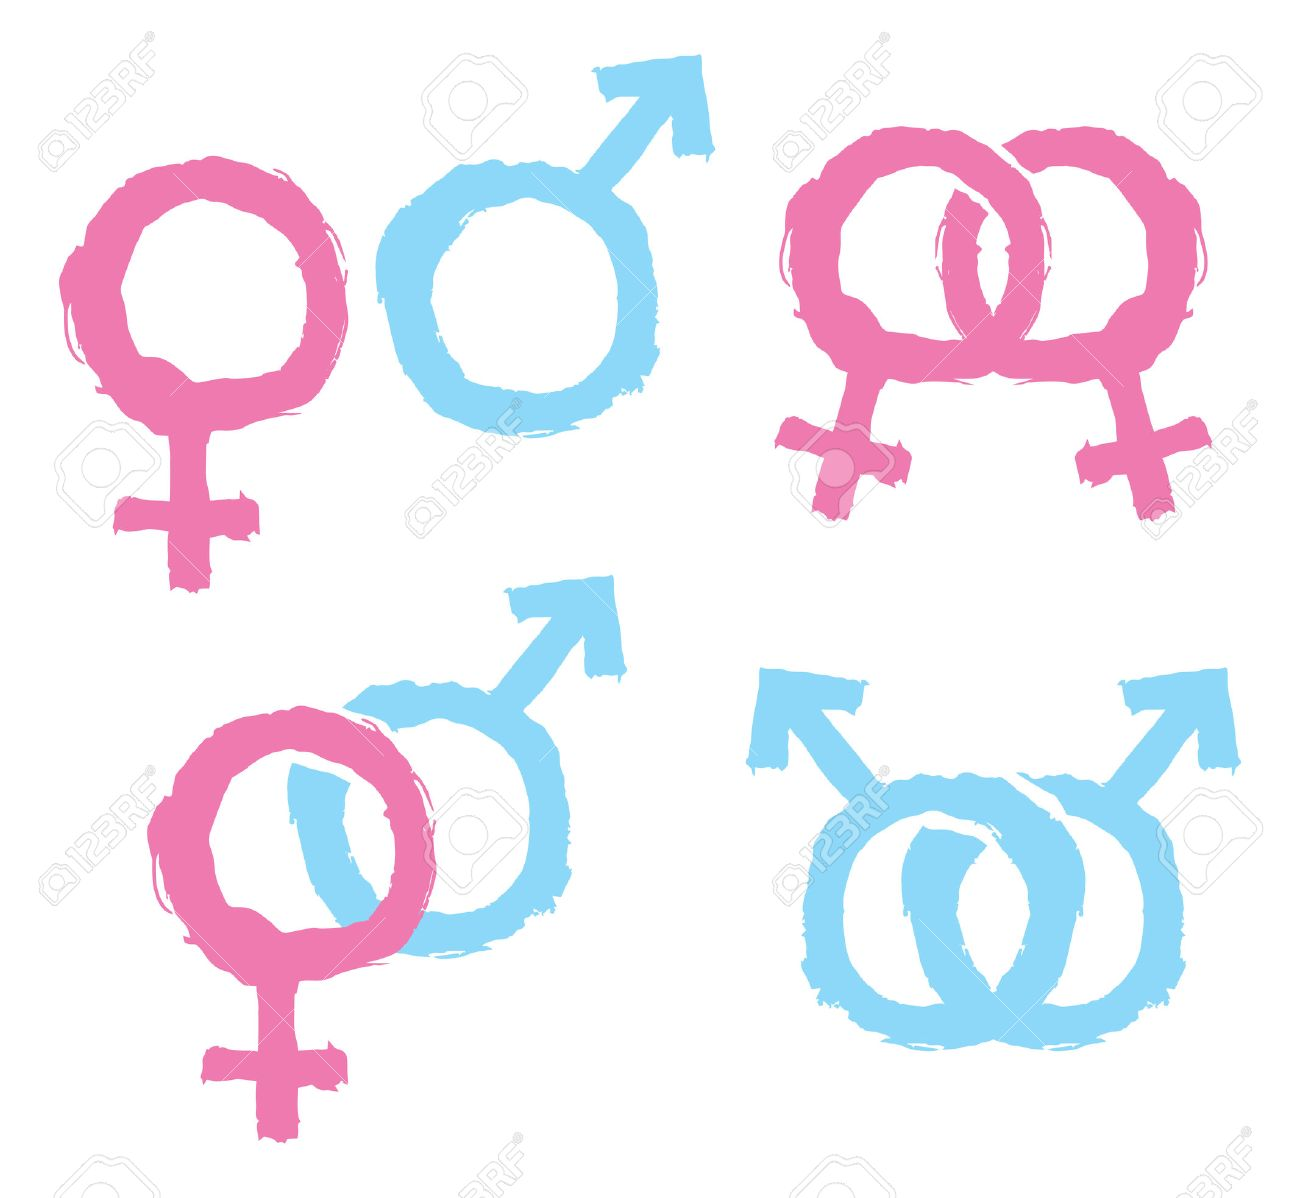 Male And Female Gender Symbols Combination Royalty Free Cliparts